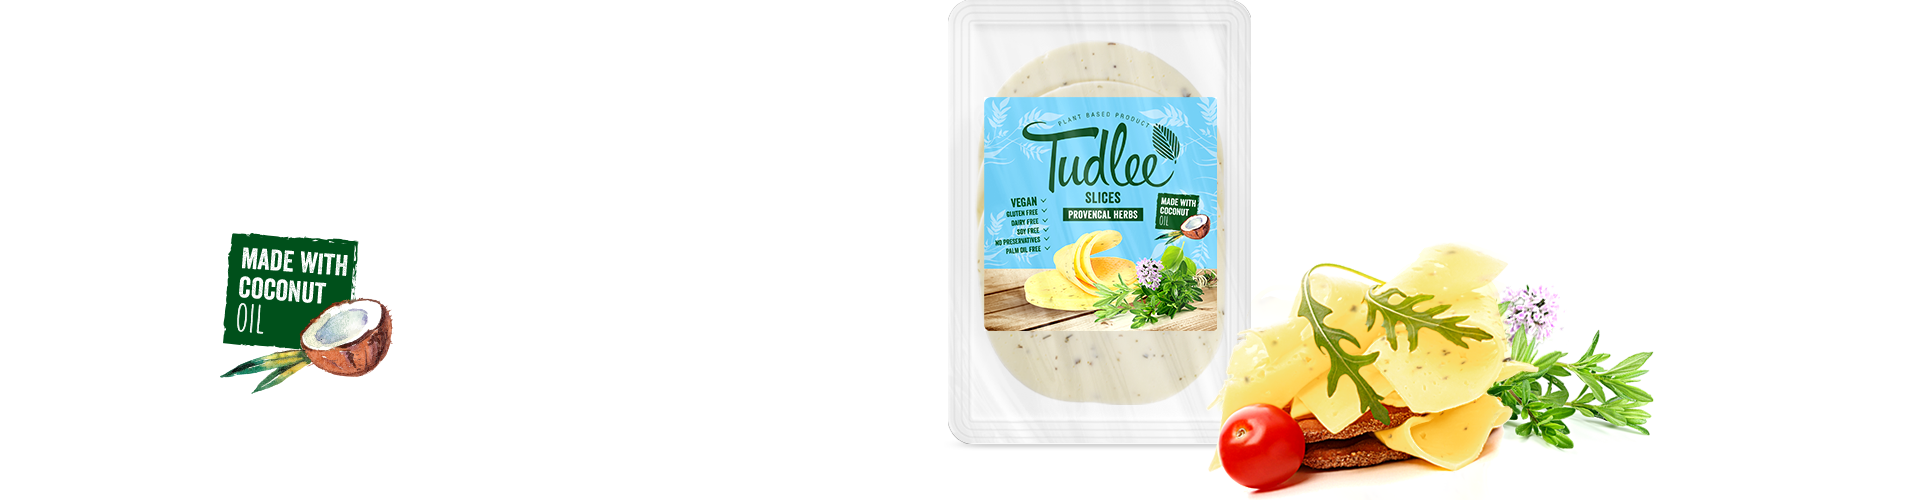 Tudlee Slices Provencal herbs - vegan